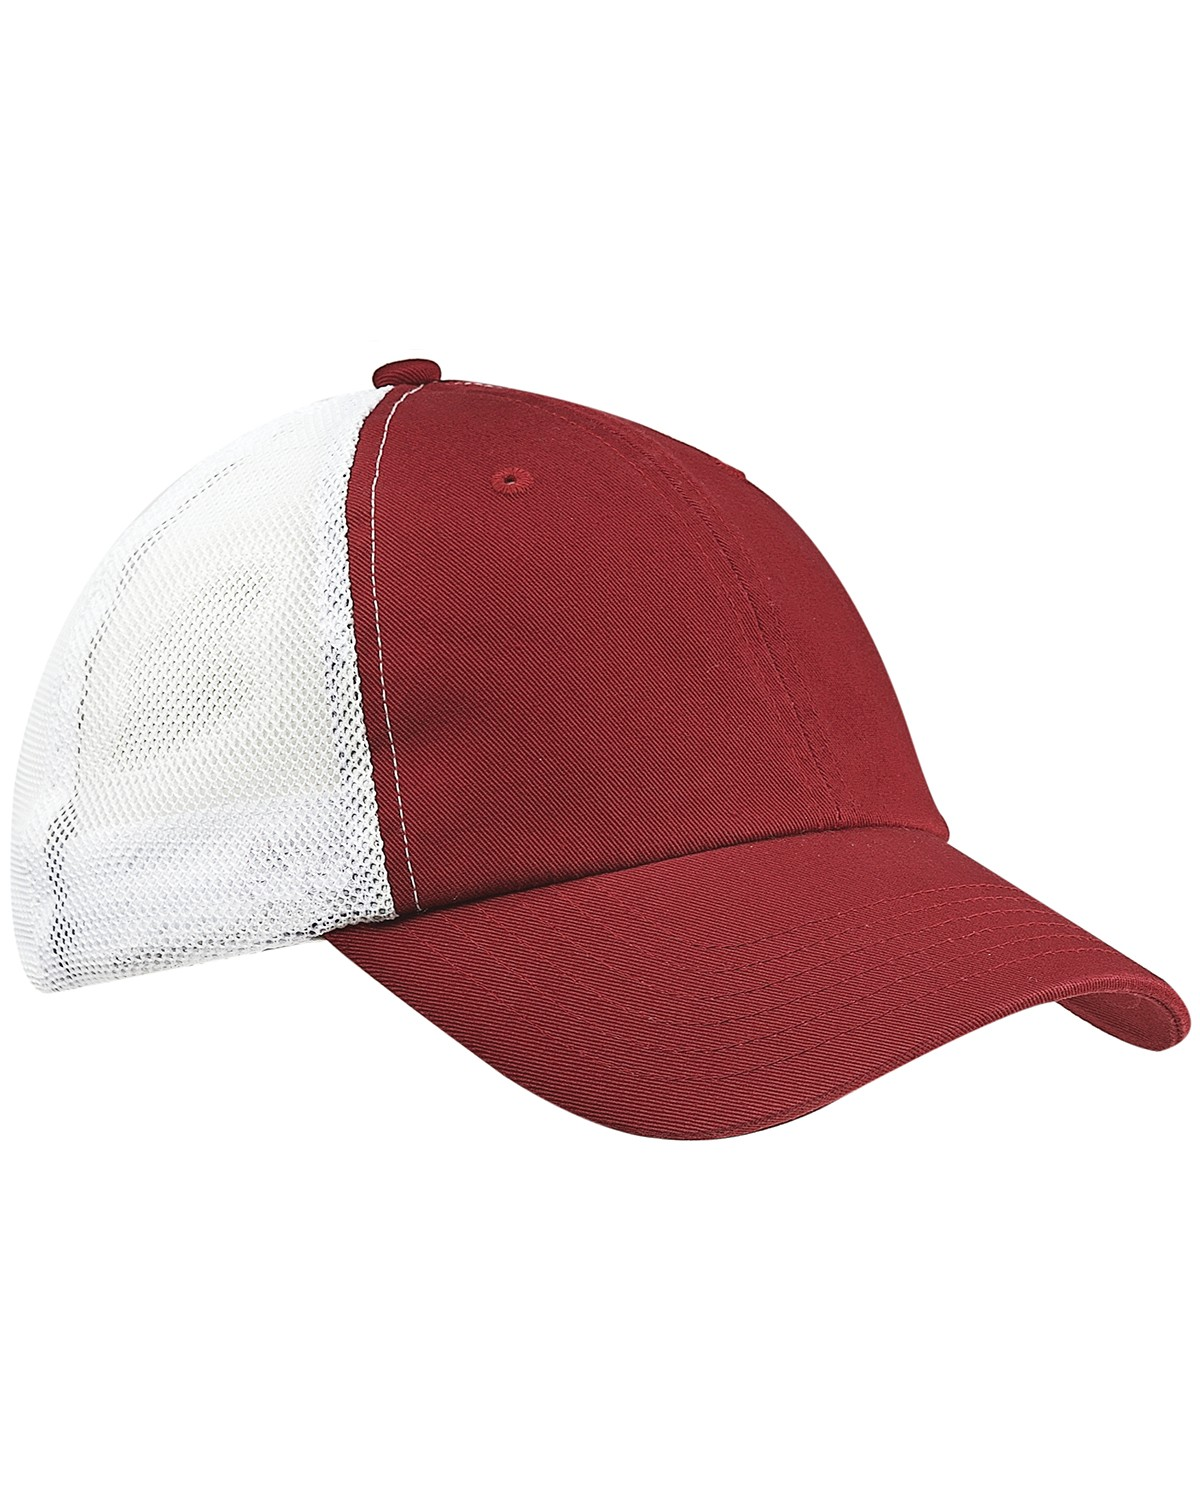 BA601 Big Accessories MAROON/WHITE